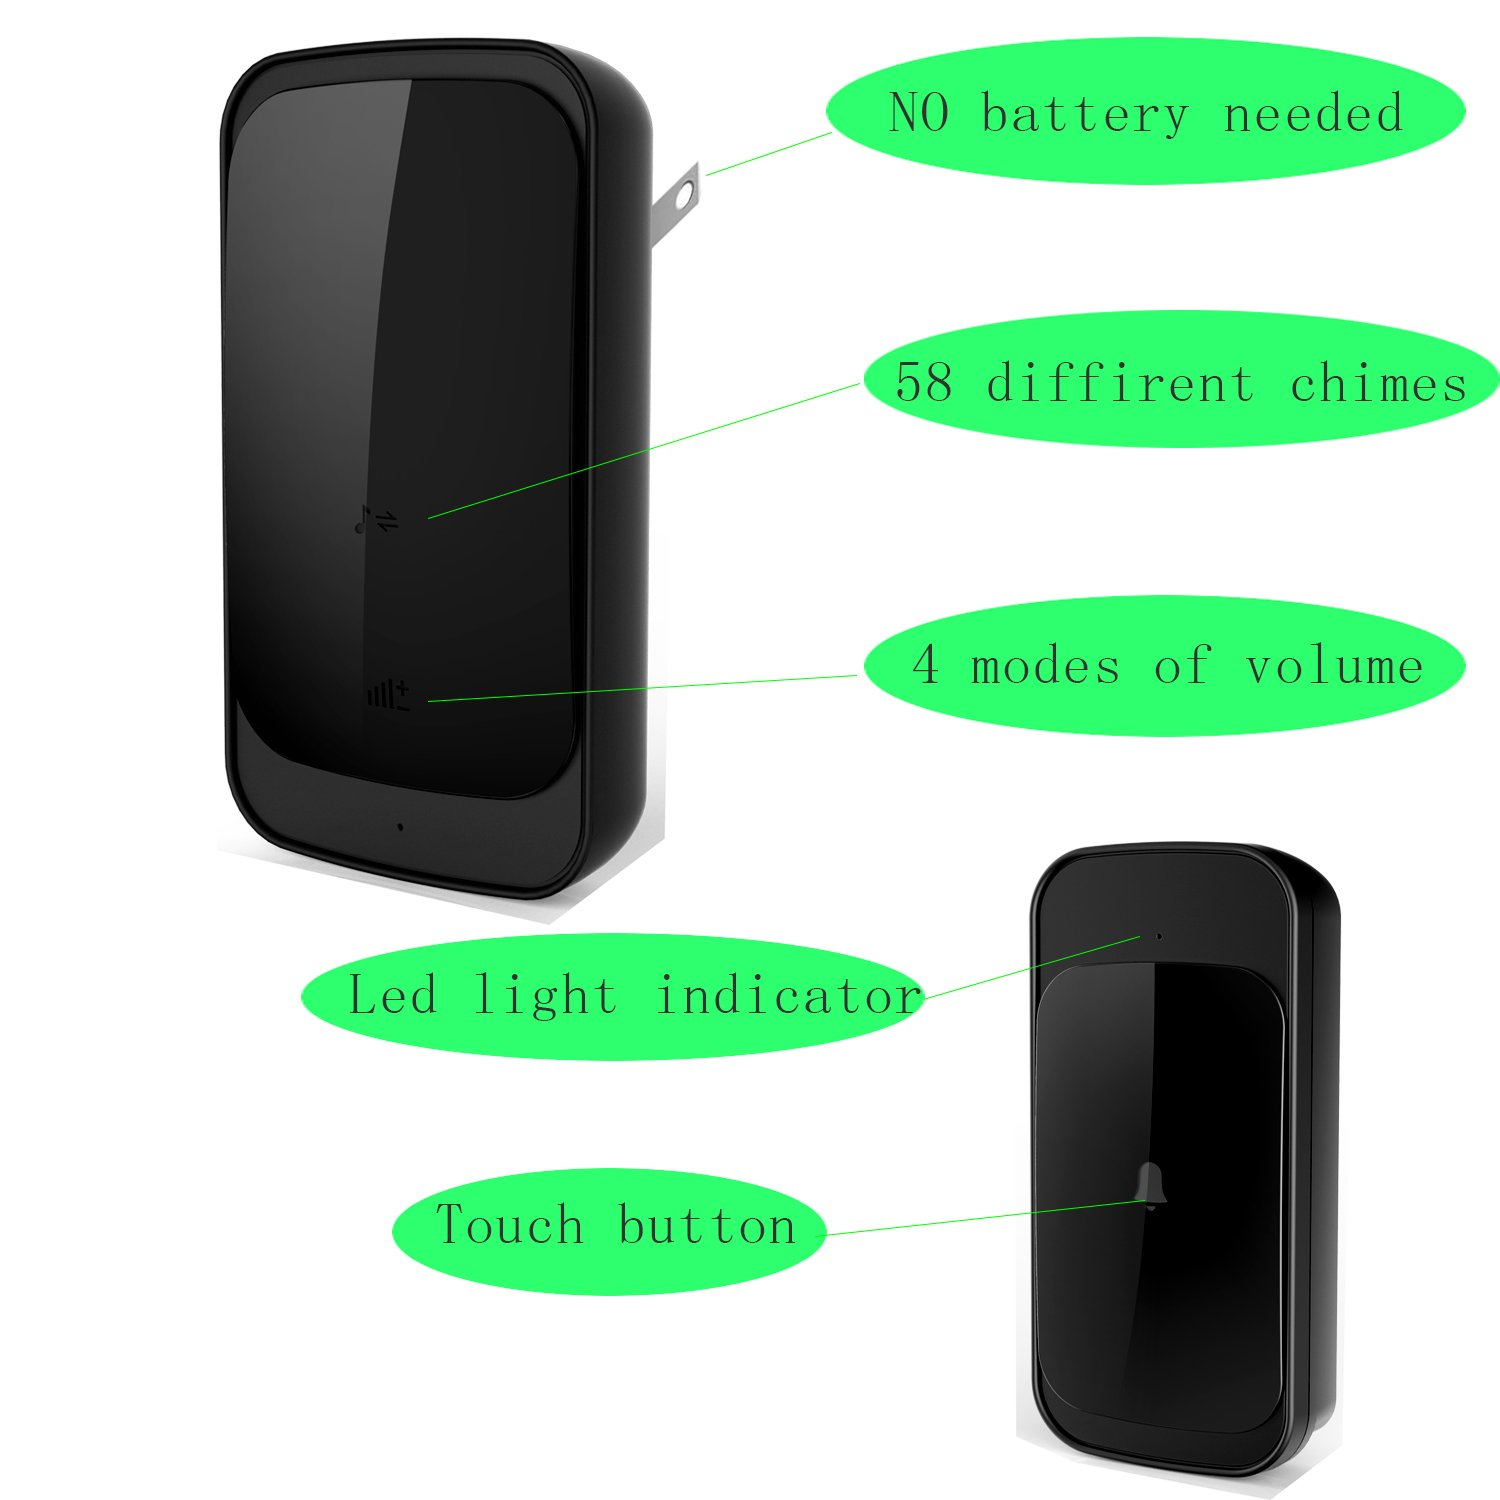 Wireless DoorBell, Anbear Wireless Door bell Chime for home IP44 Waterpoof Operating at 900 Feet with 58 Melodies, 4 Volume Levels & LED Flash by Anbear (Image #6)